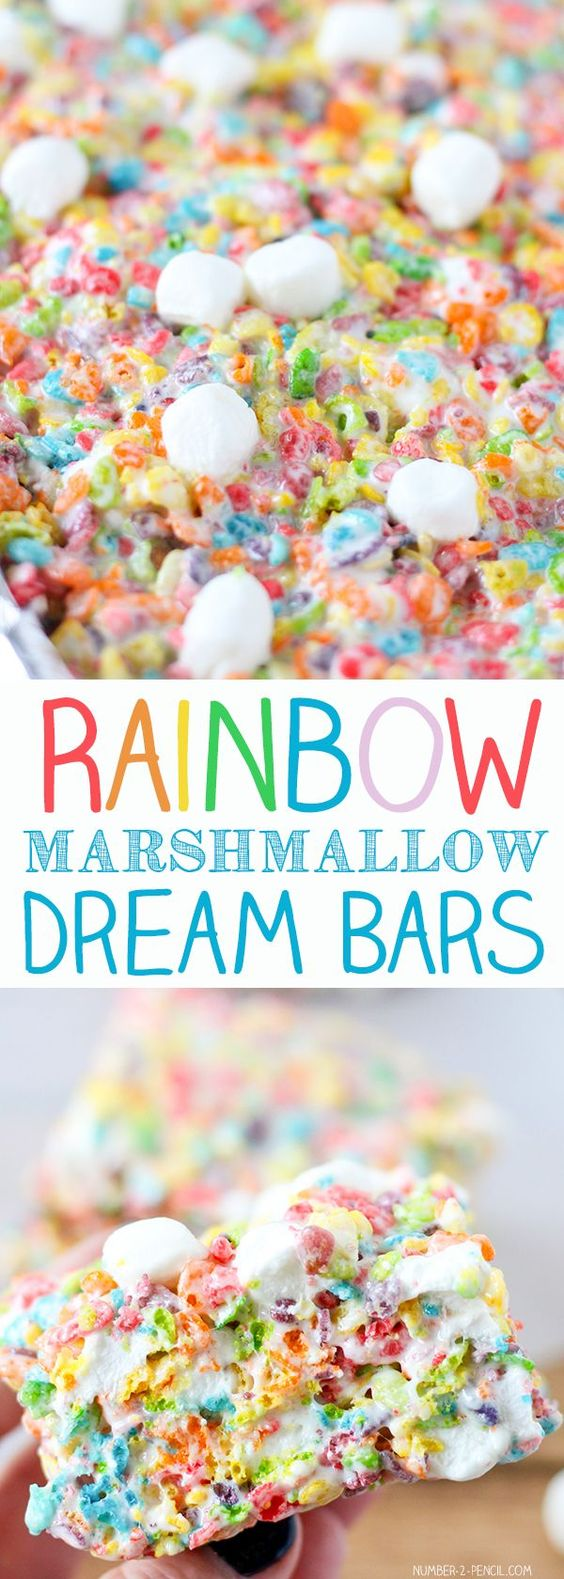 These Rainbow Marshmallow Dream Bars are the ultimate Fruity Pebbles treats! Super soft and colorful, these bars are so good that they needed a name that was a little more exciting than Fruity Pebbles